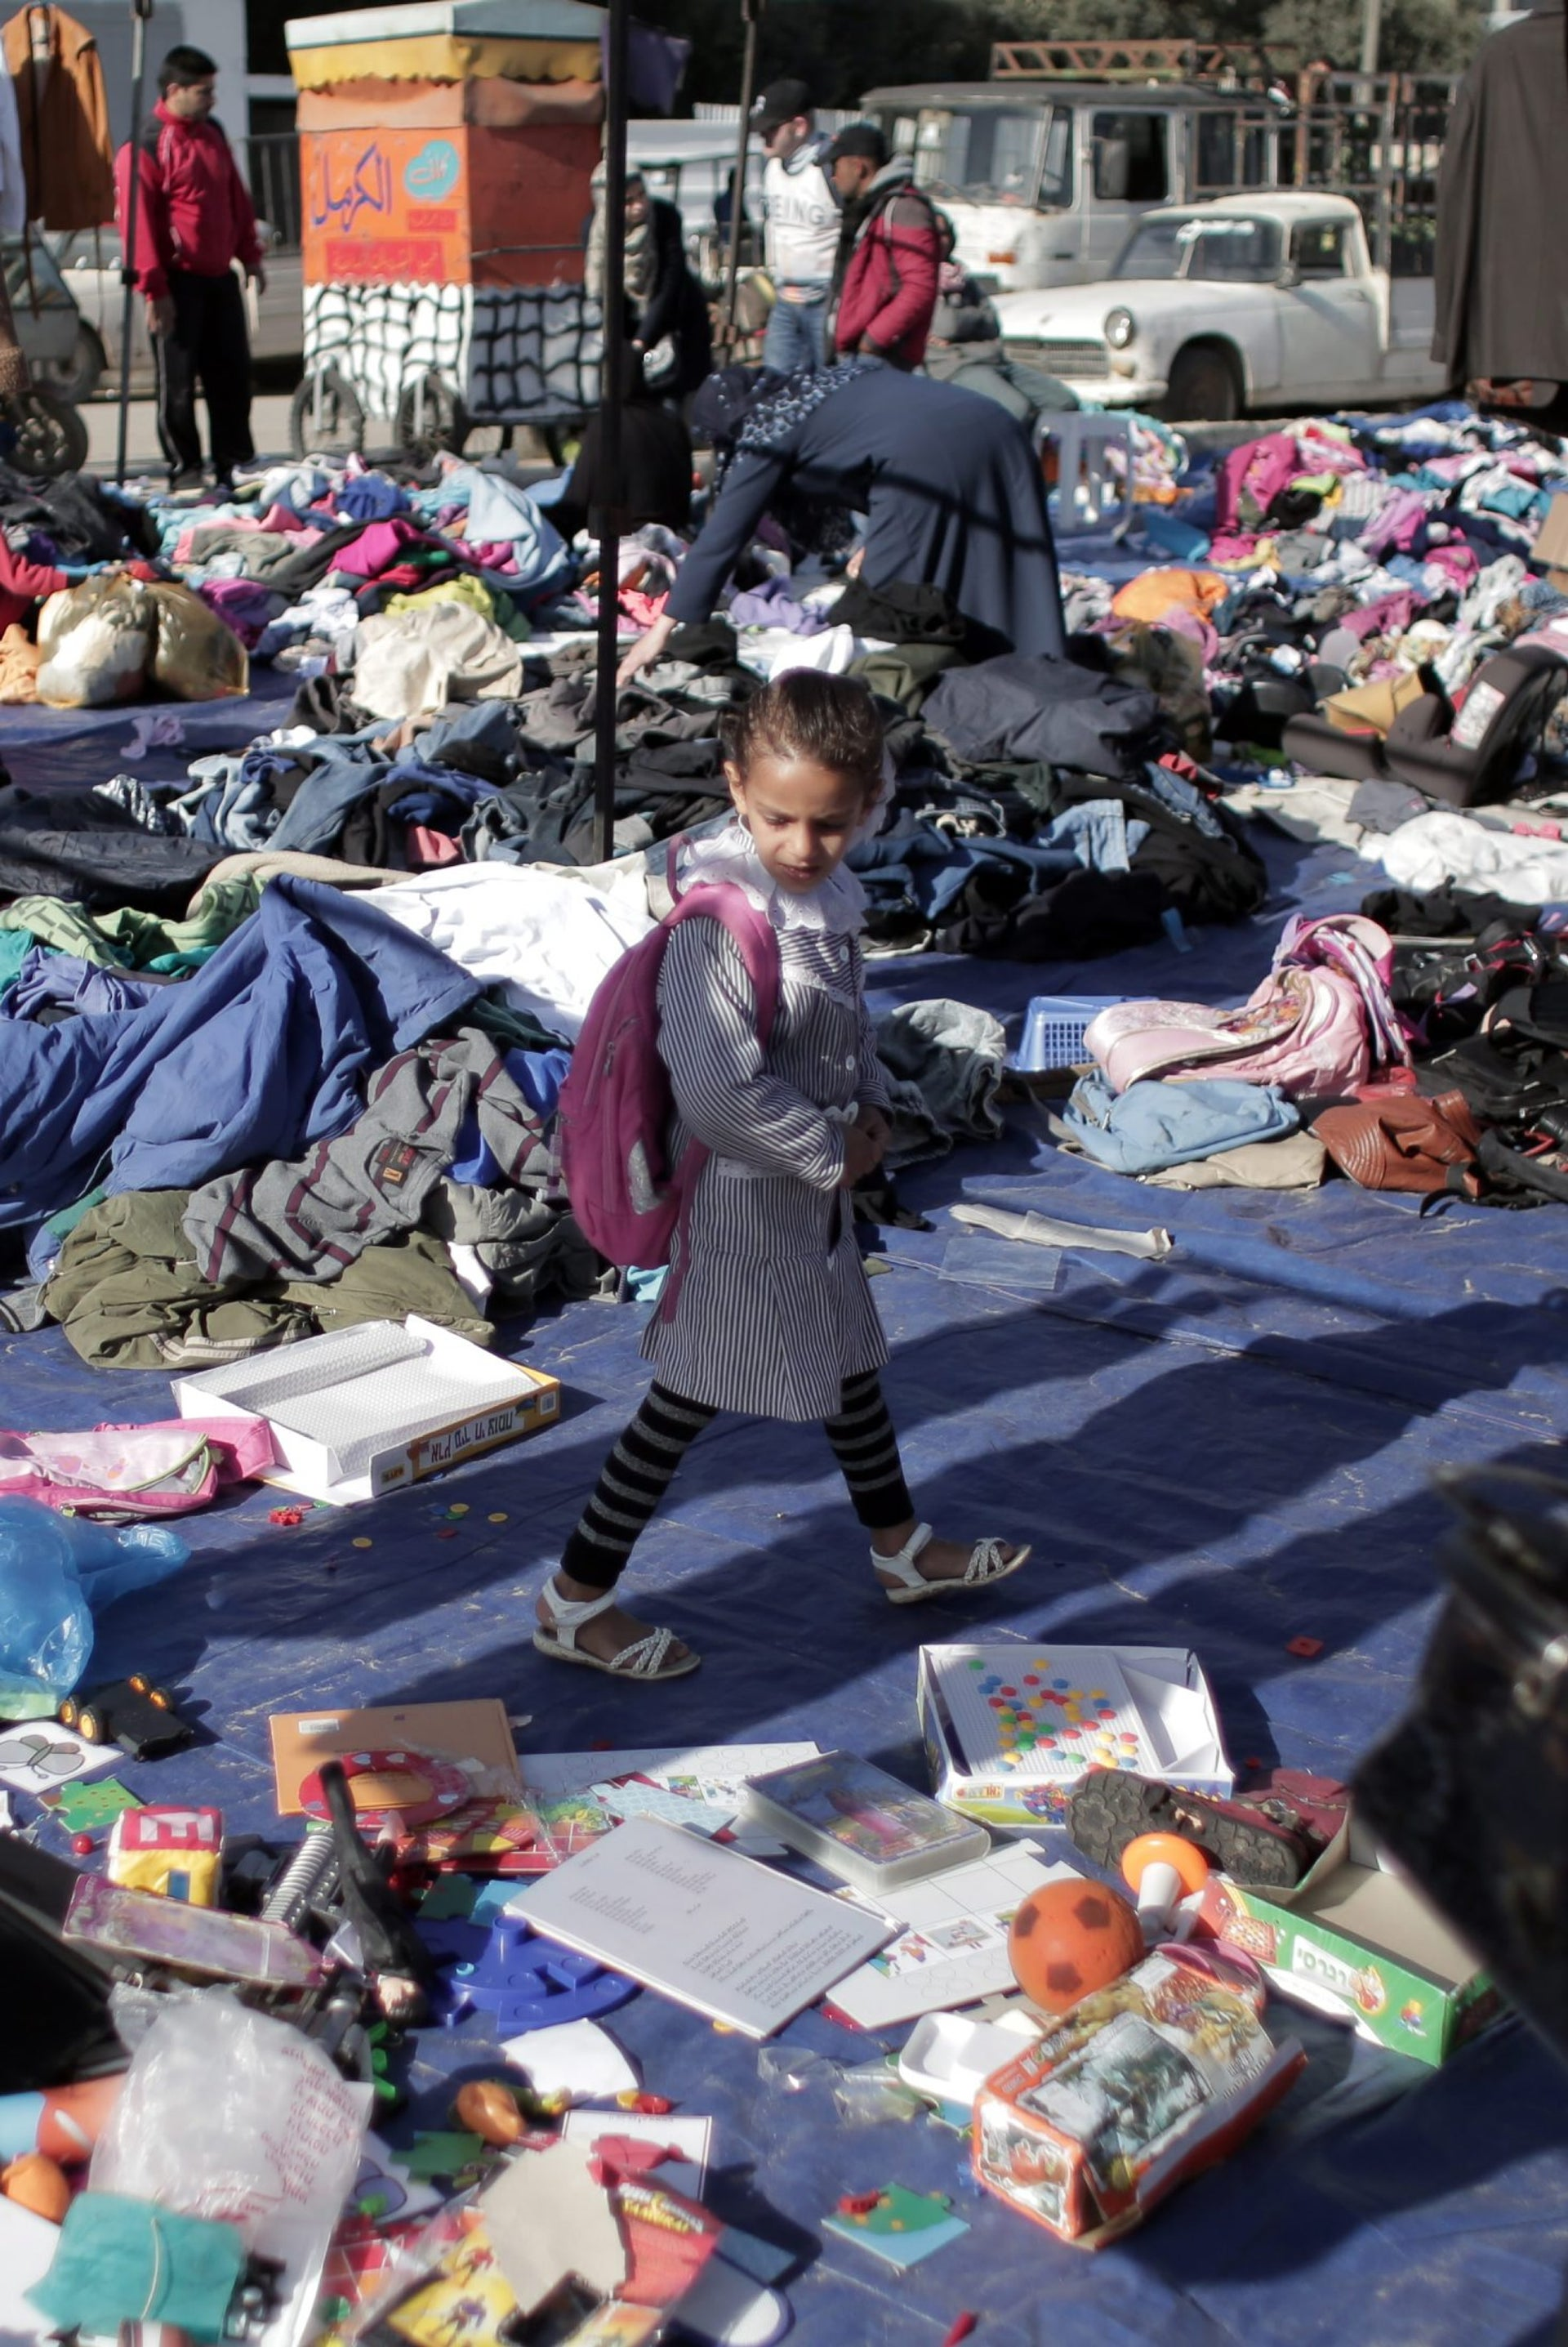 A Palestinian schoolgirl looks at used toys and clothing at the weekly flea market in Nusseirat refugee camp, central Gaza Strip, Feb. 15, 2016.